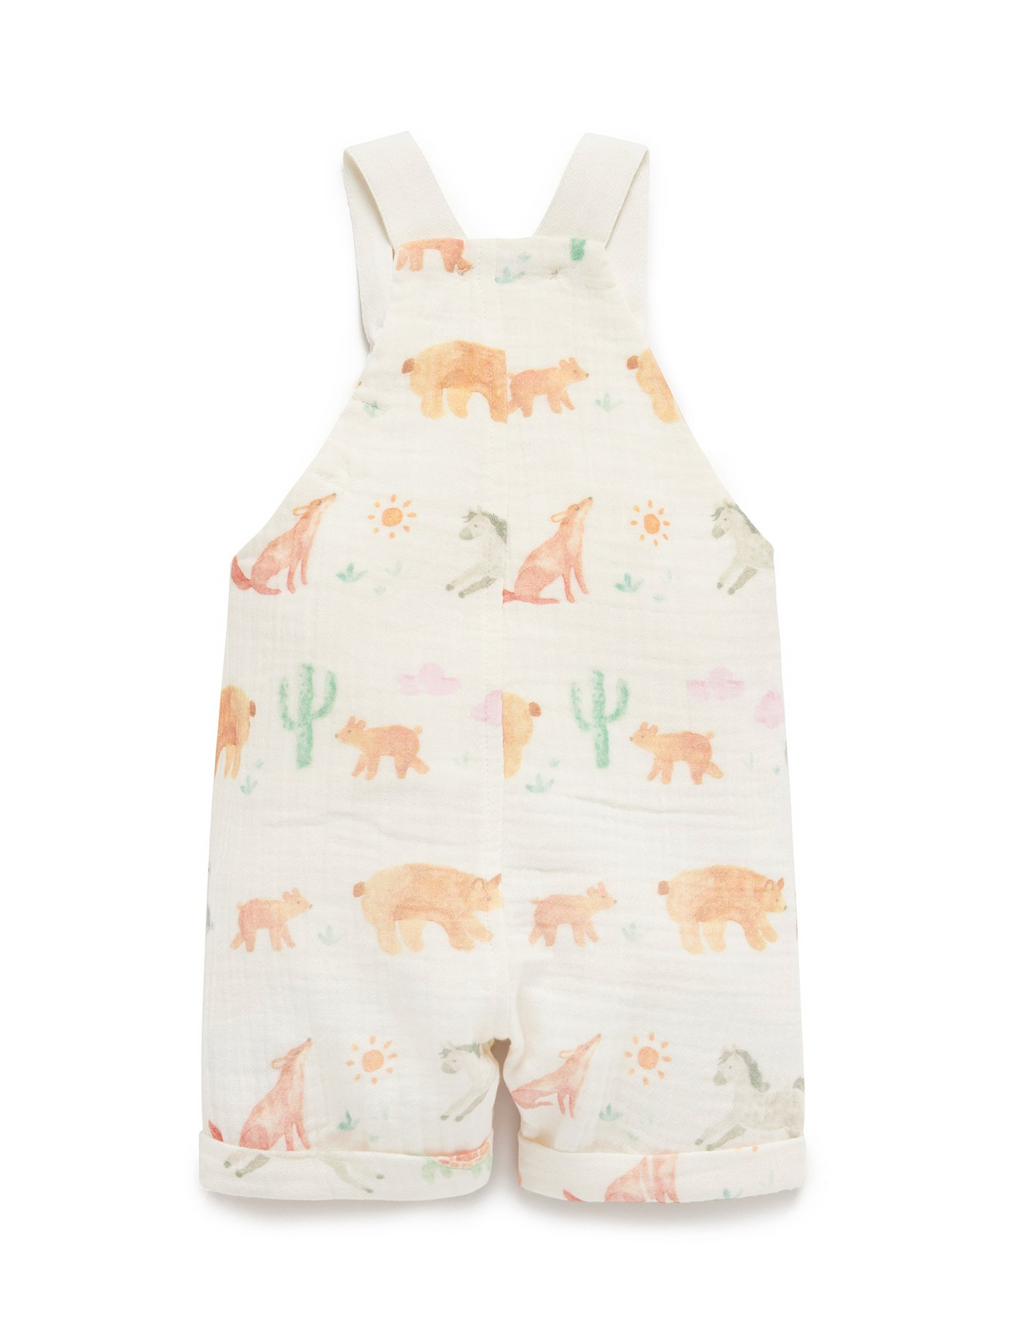 Purebaby California Coast Overall